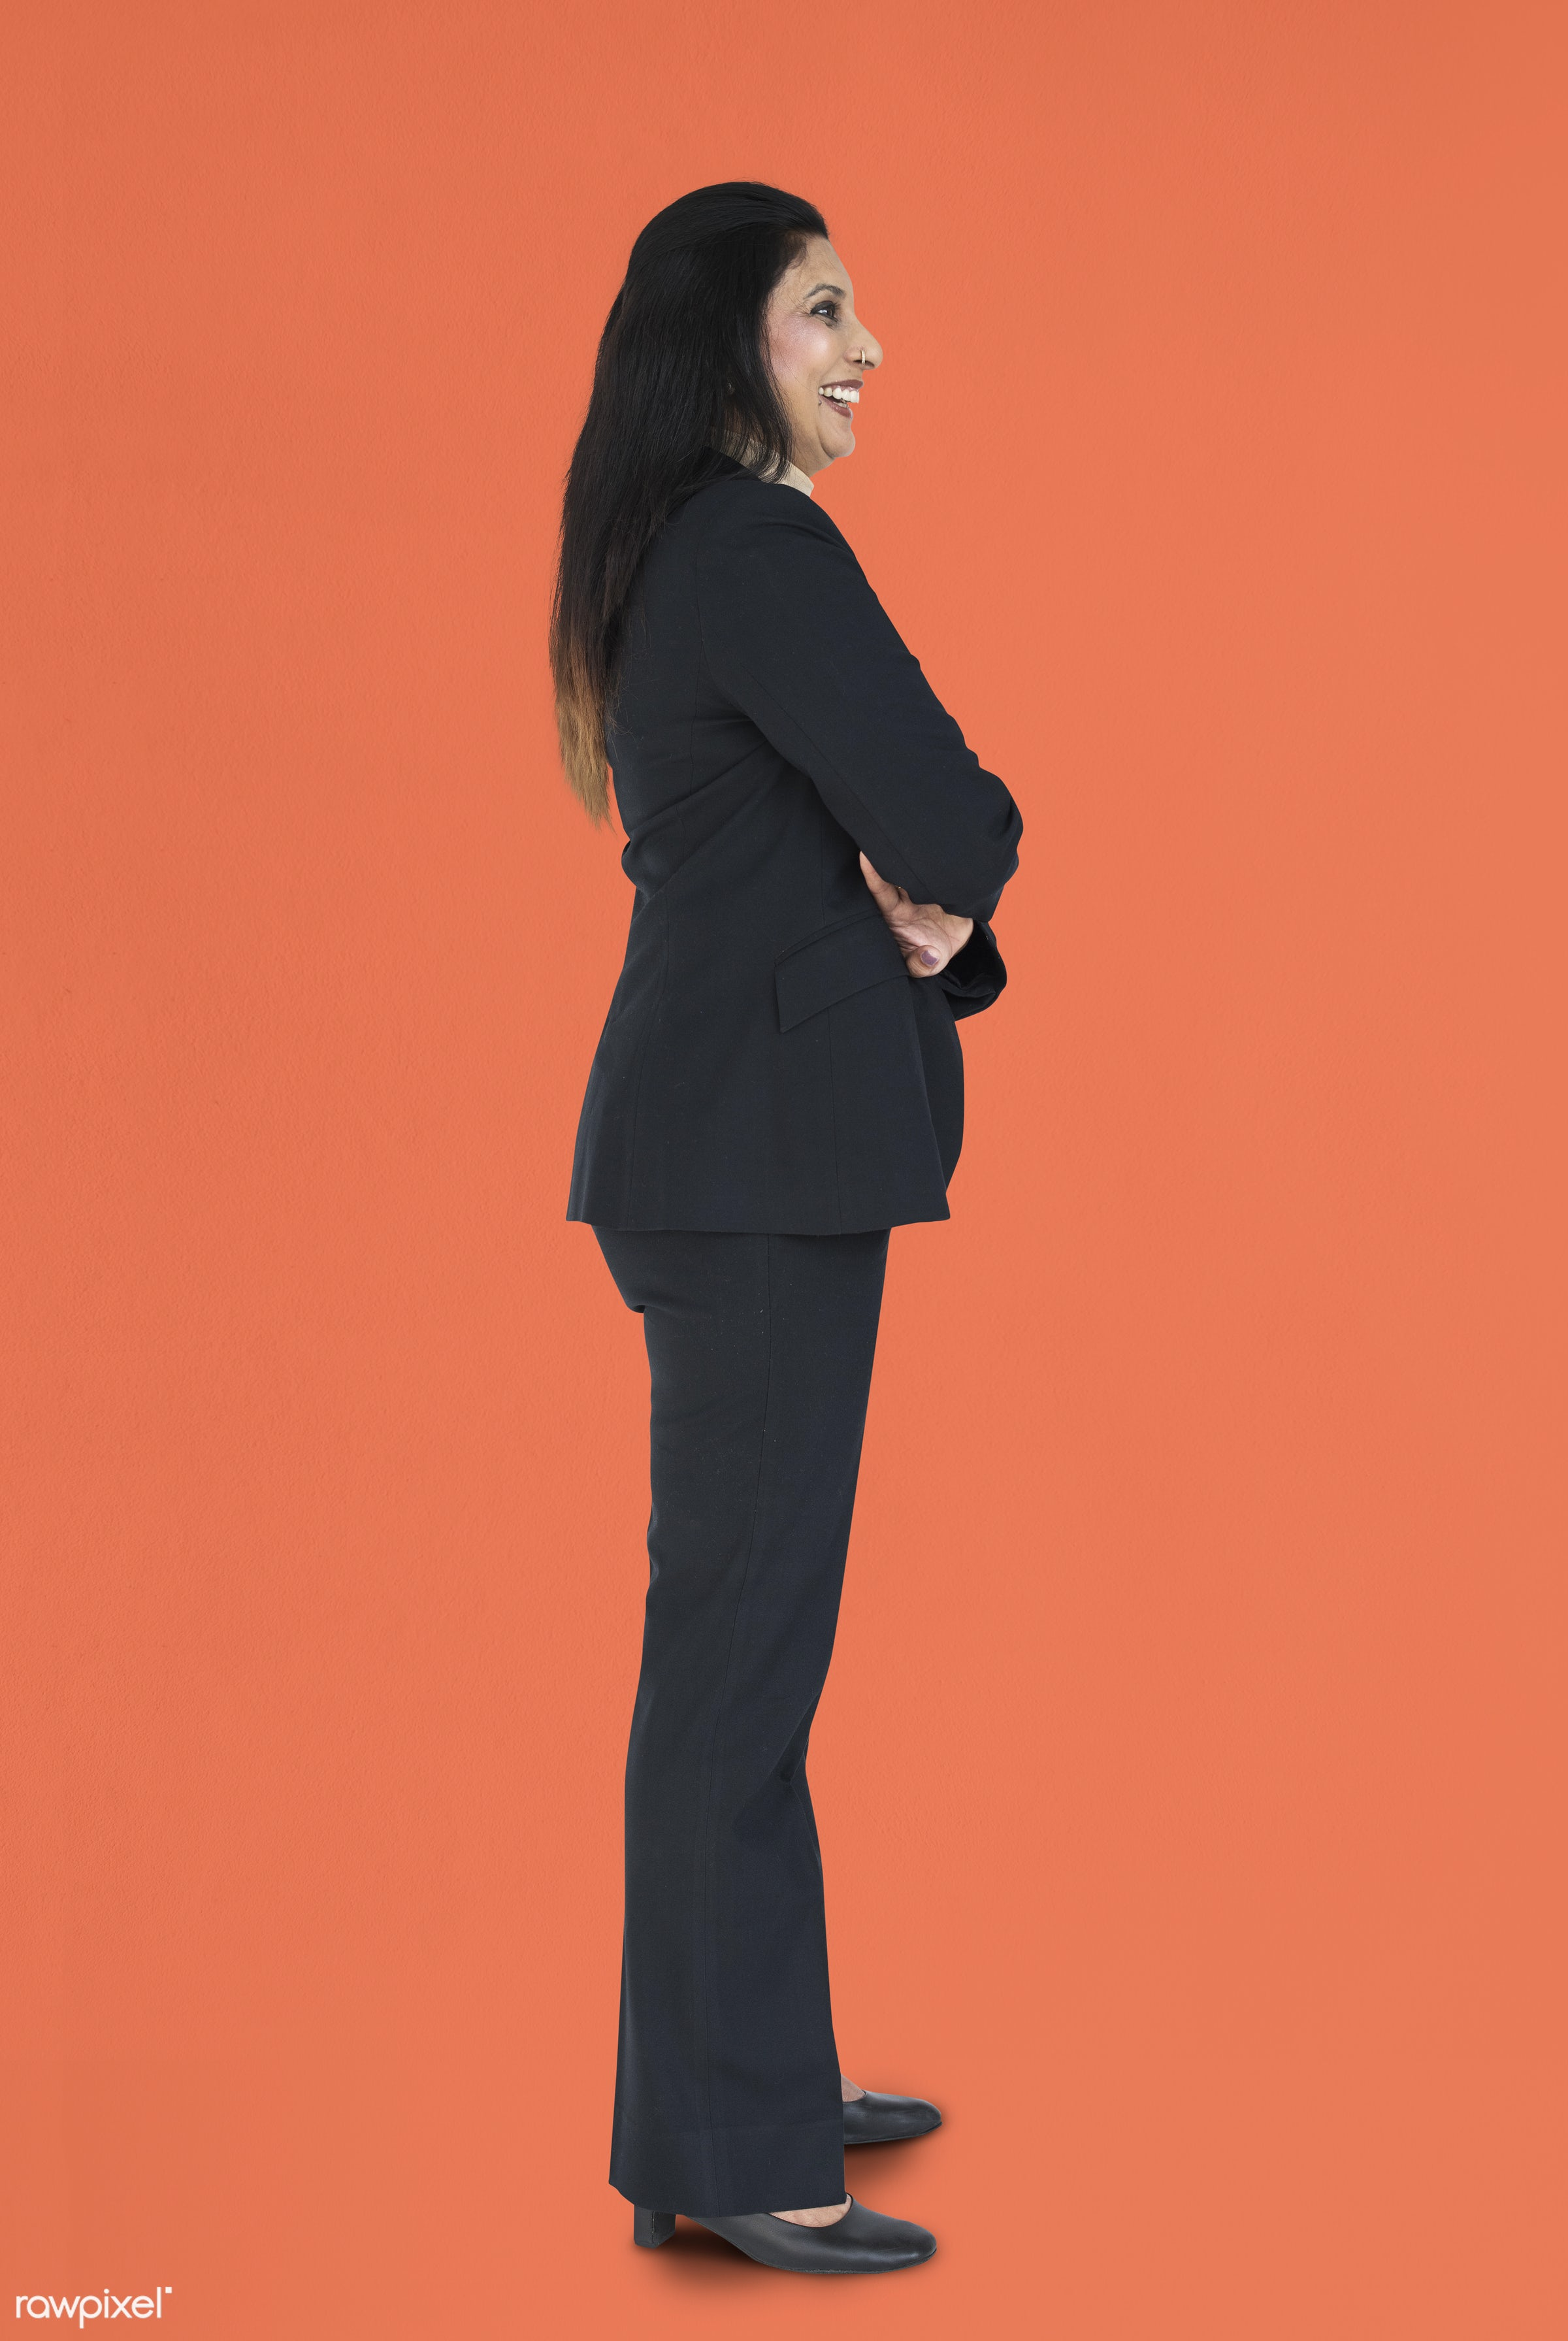 expression, studio, person, people, woman, smile, cheerful, smiling, orange, isolated, happiness, businesswoman, portrait,...